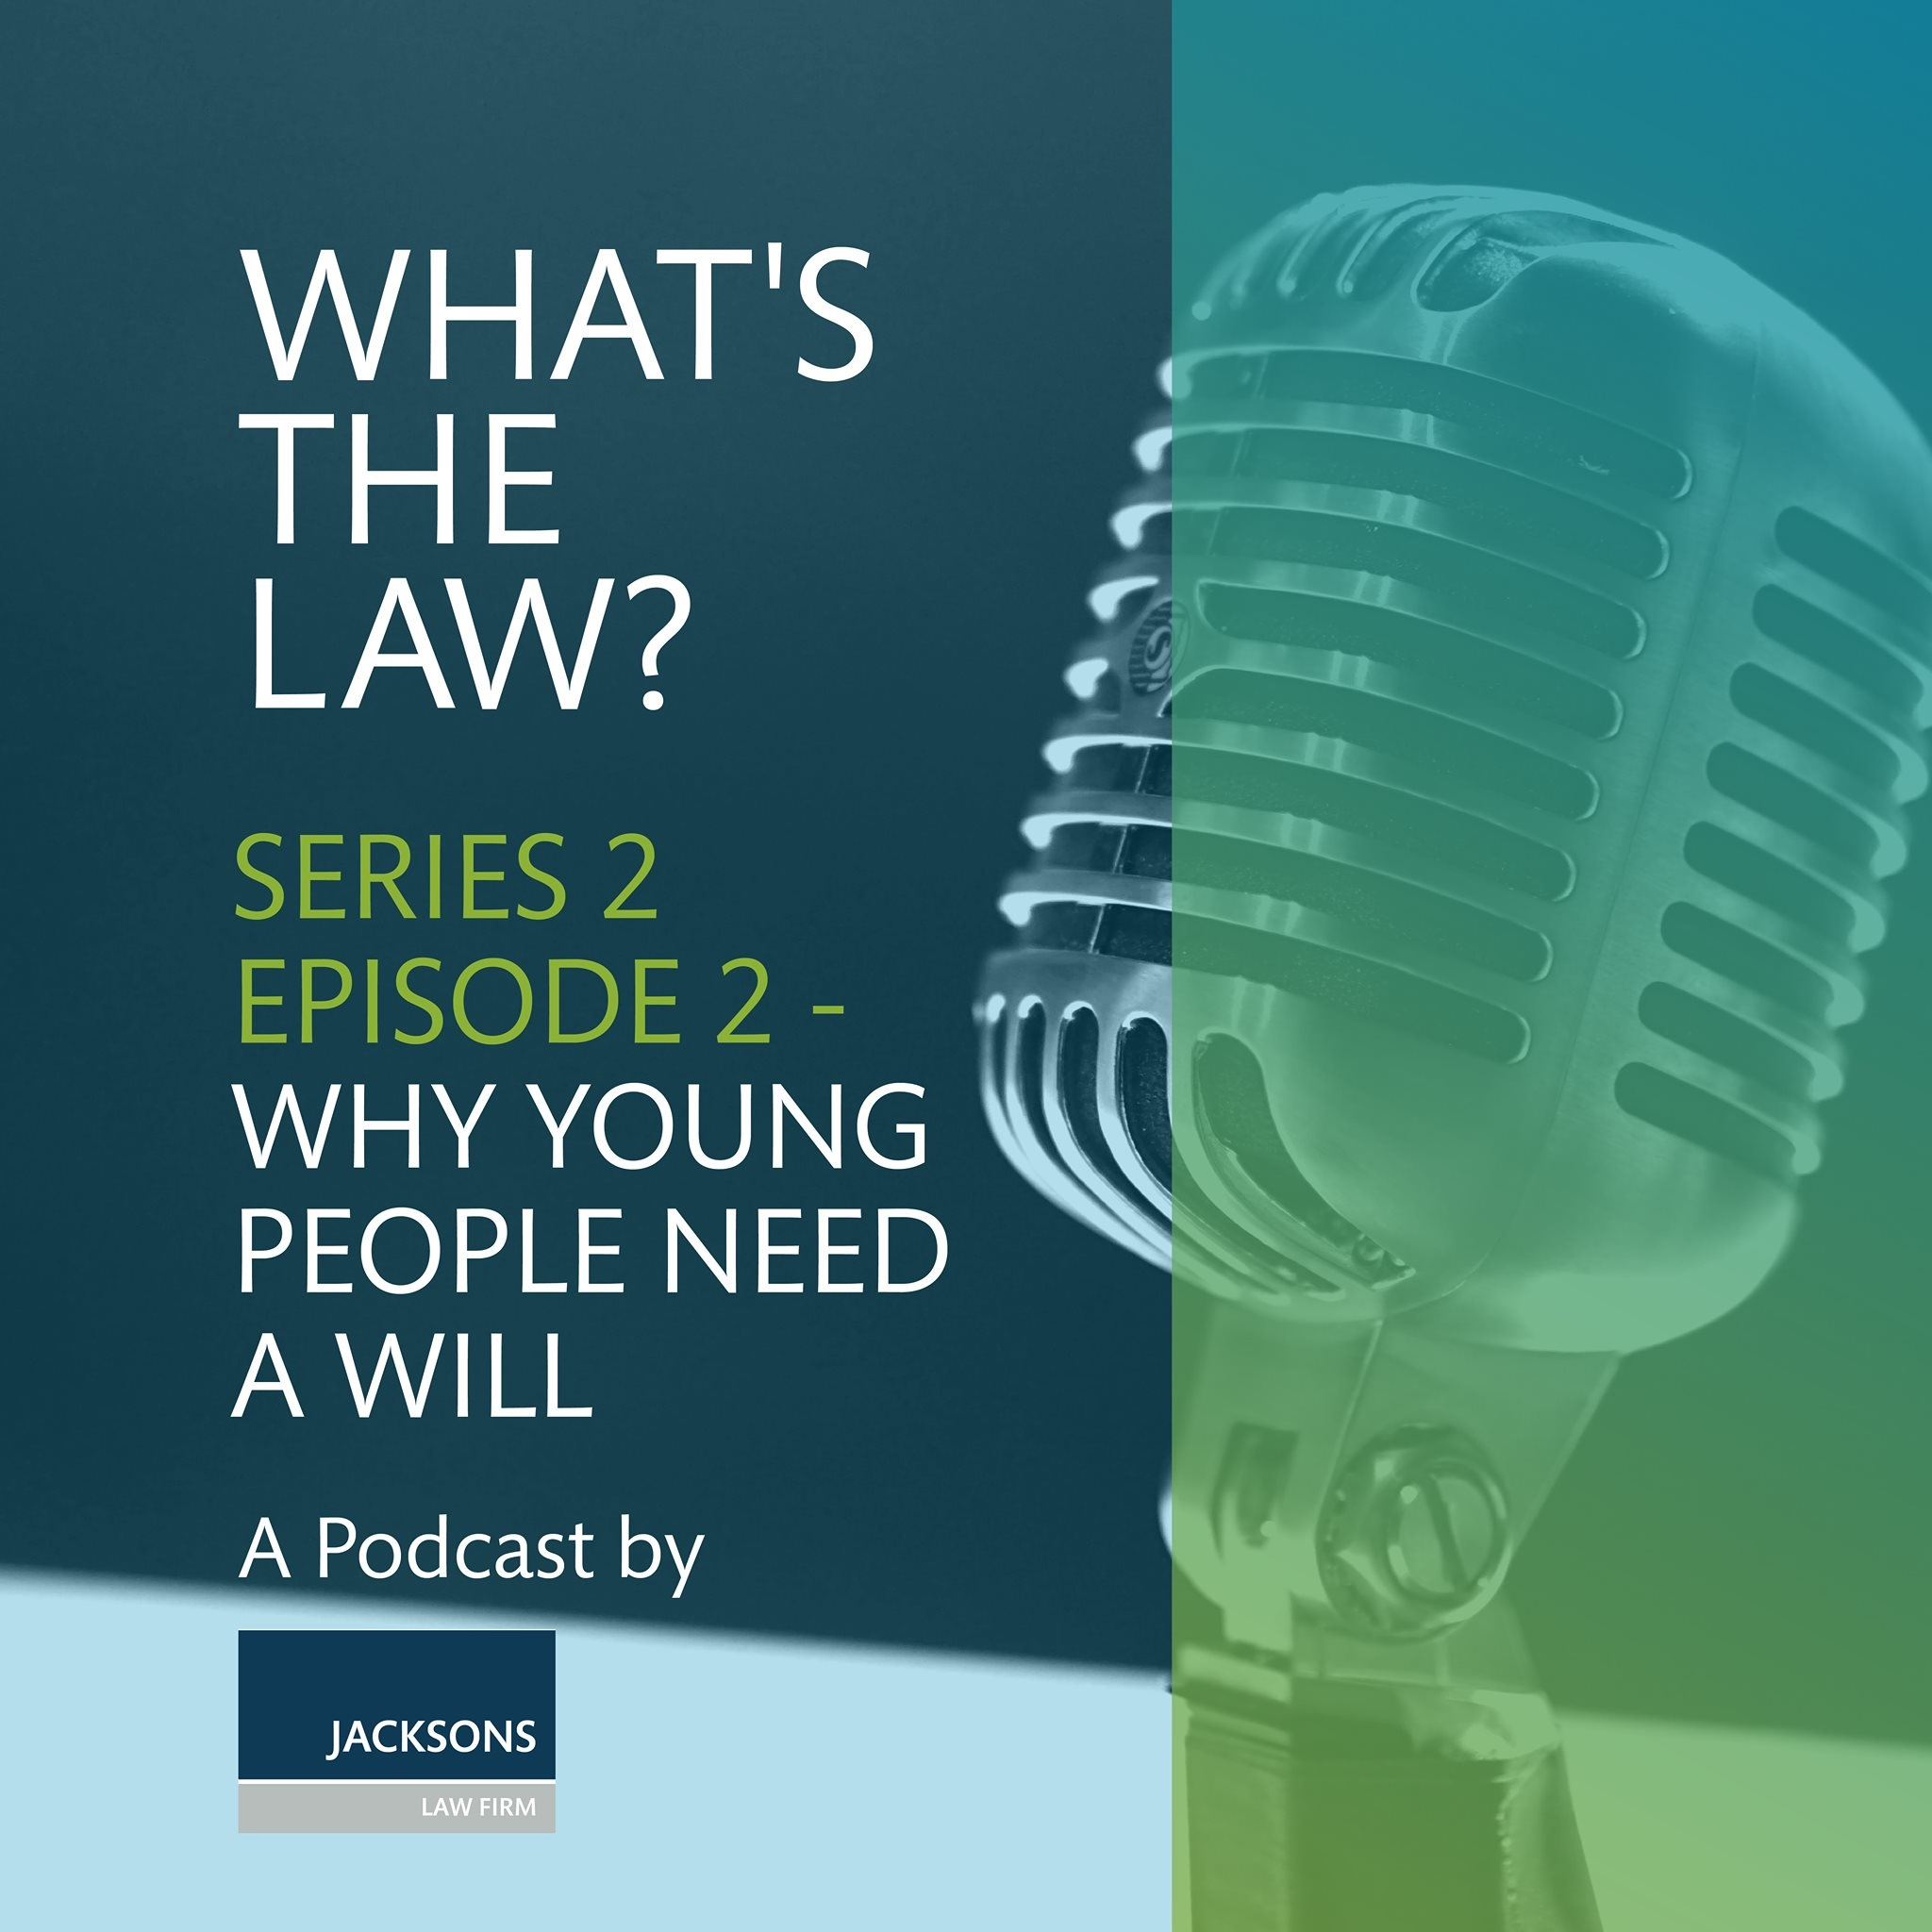 #WhatsTheLawPod – Series 2, Episode 2, Why young people need a Will.